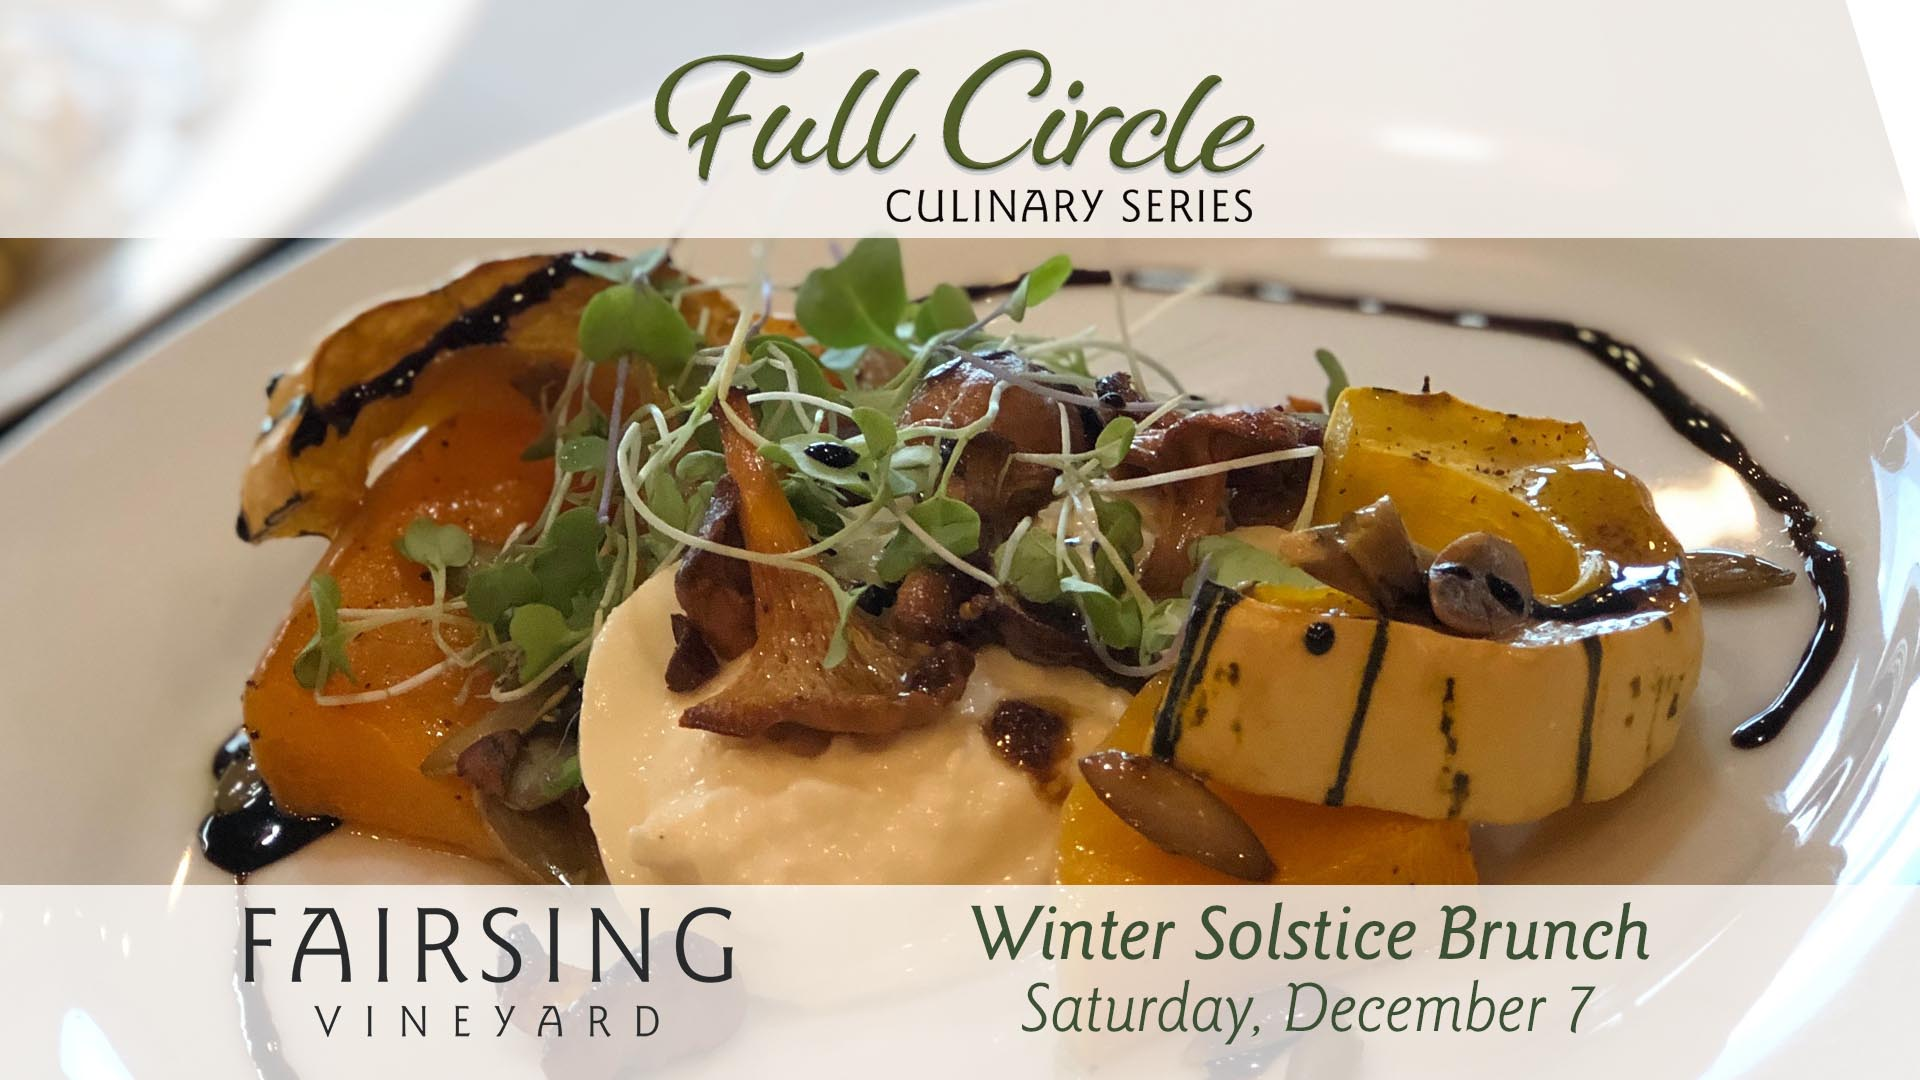 Winter Solstice Brunch @ Fairsing Vineyard